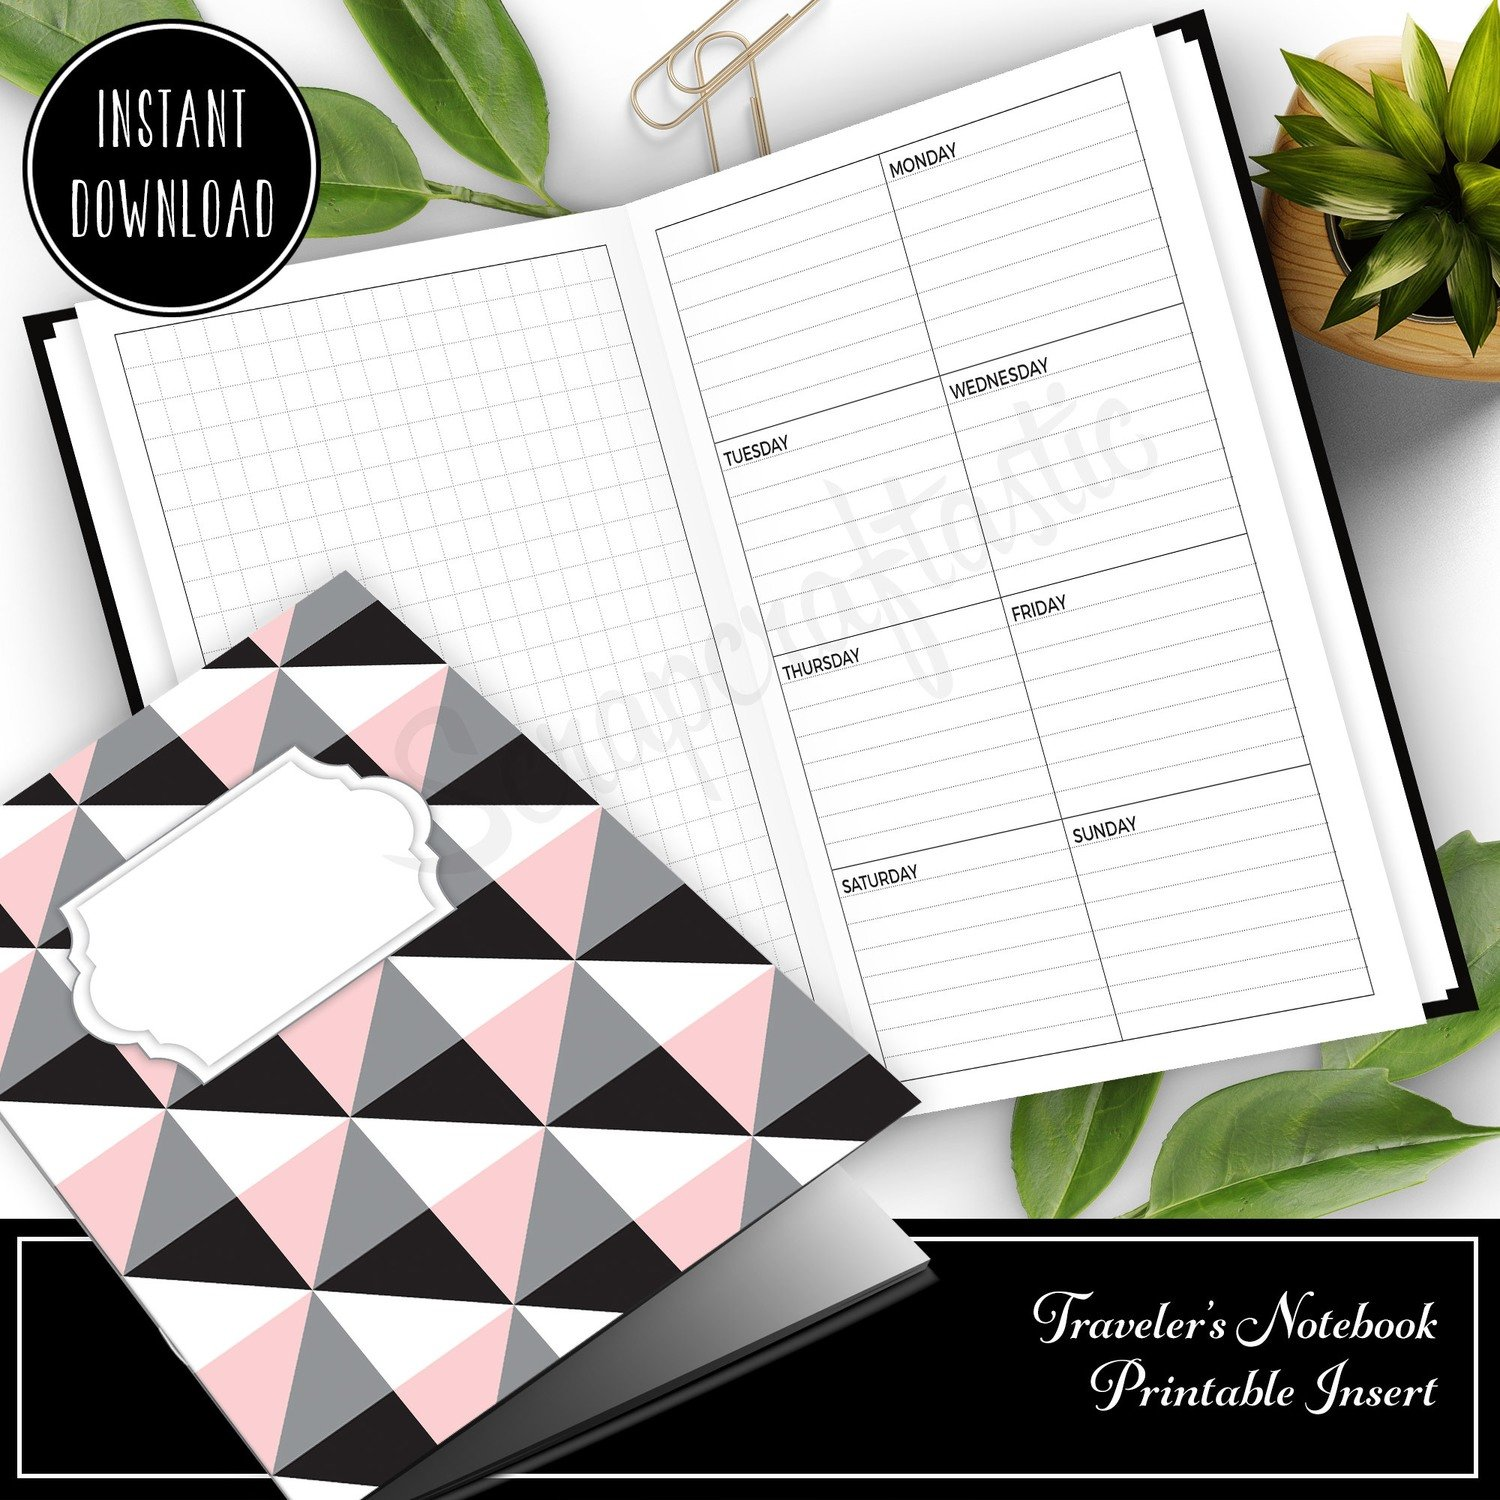 MICRO TN - Grid and Boxed Lined Undated Weekly Traveler's Notebook Printable Planner Insert